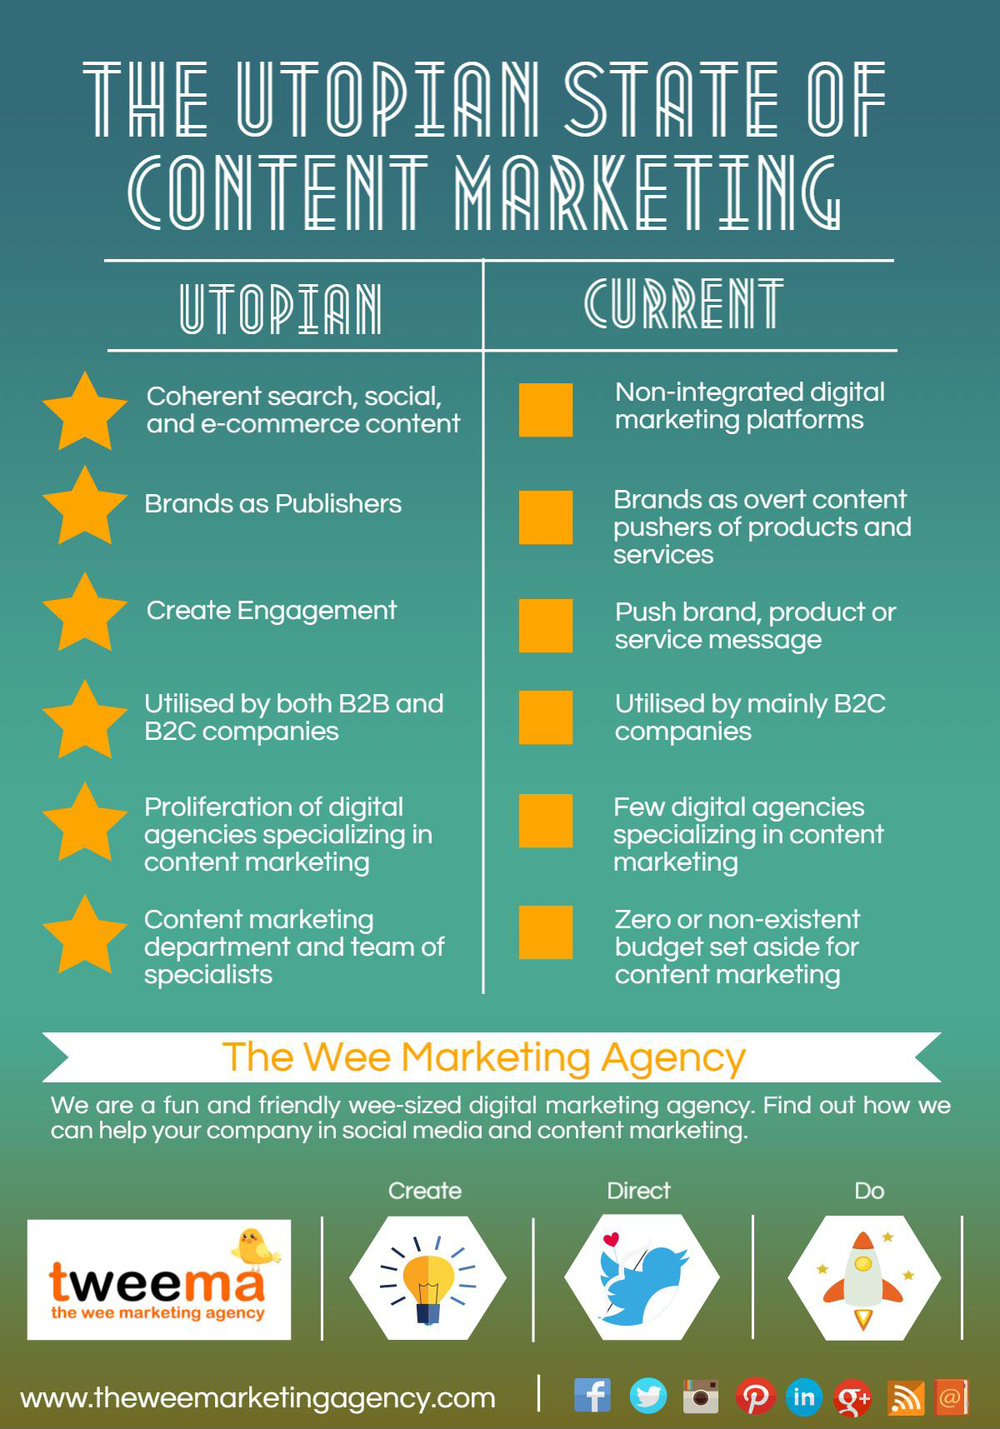 utopian-state-content-marketing-social-media